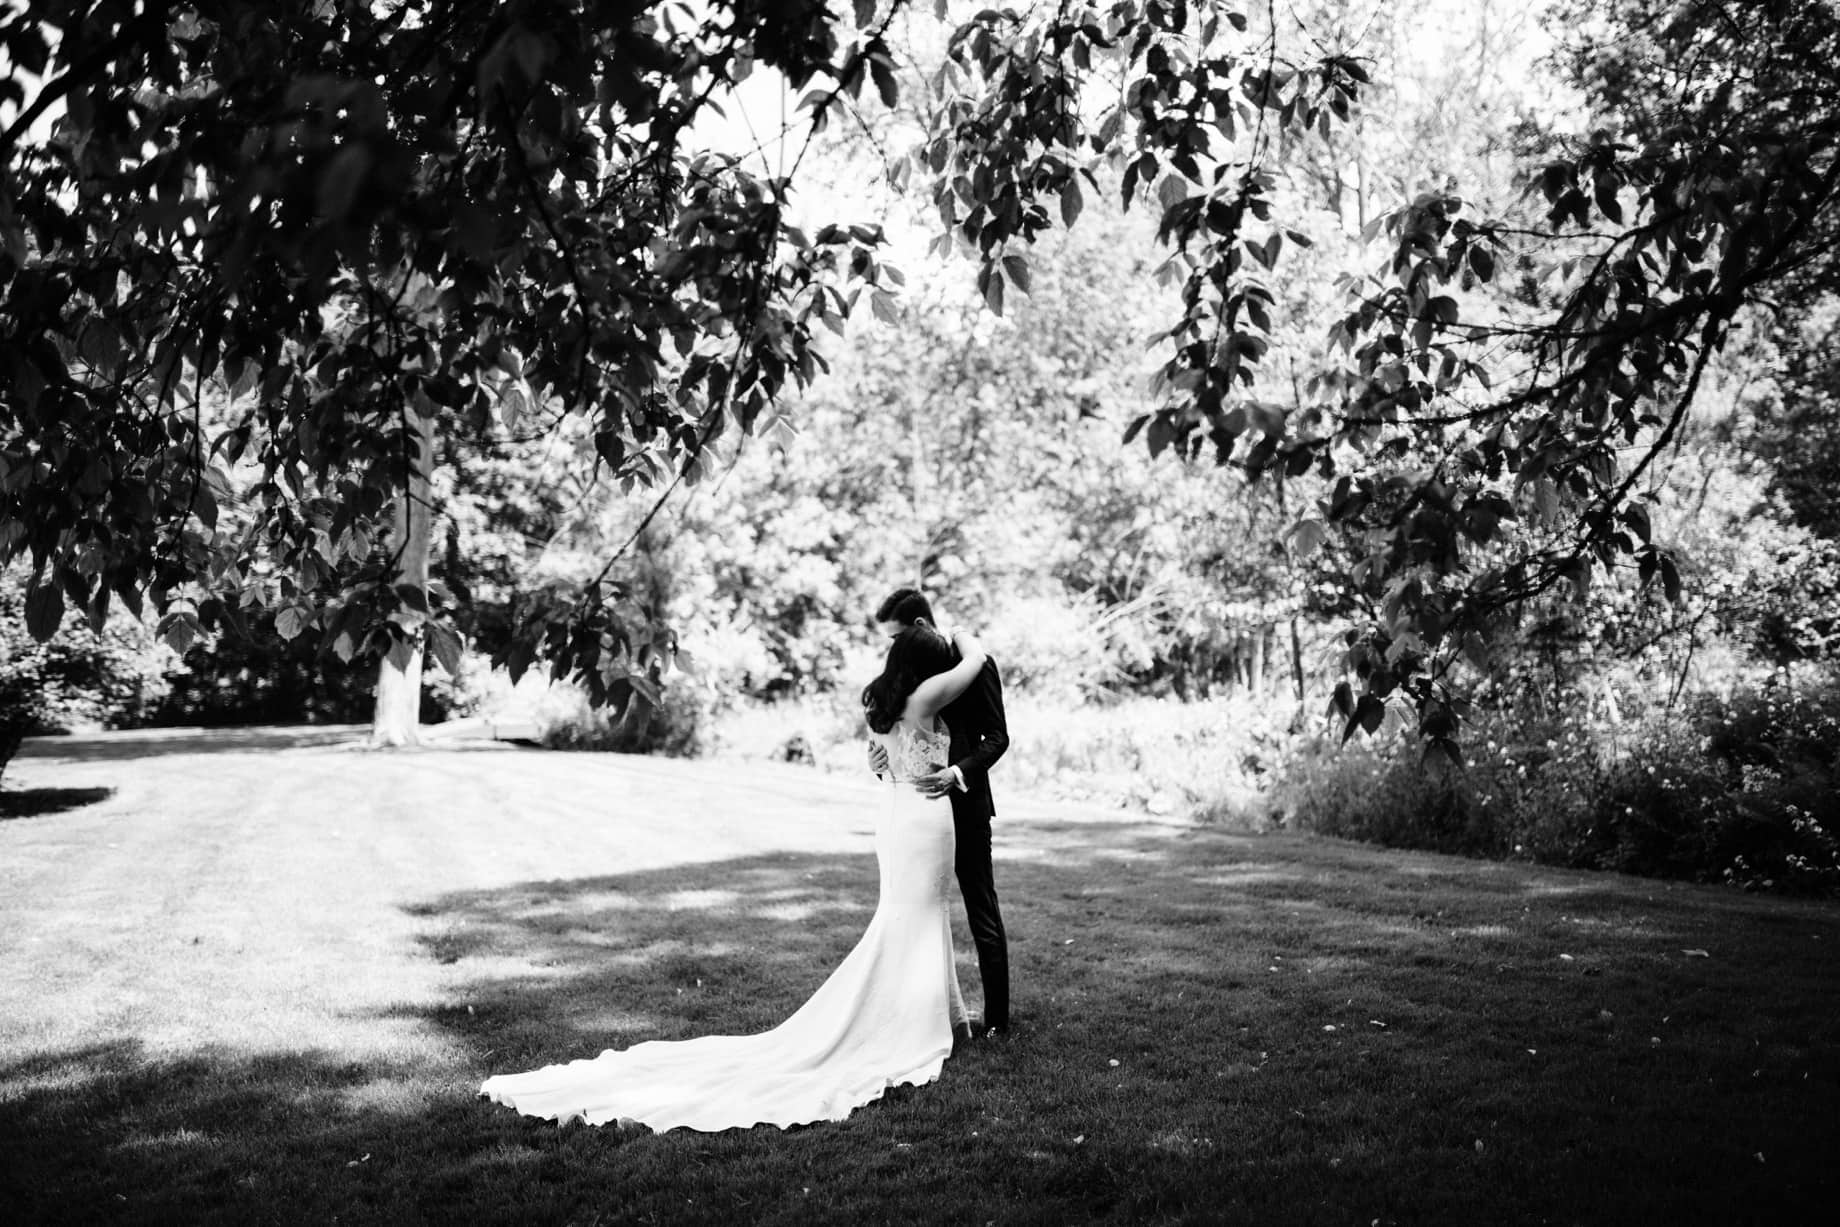 black and white portrait of a bride and groom embracing